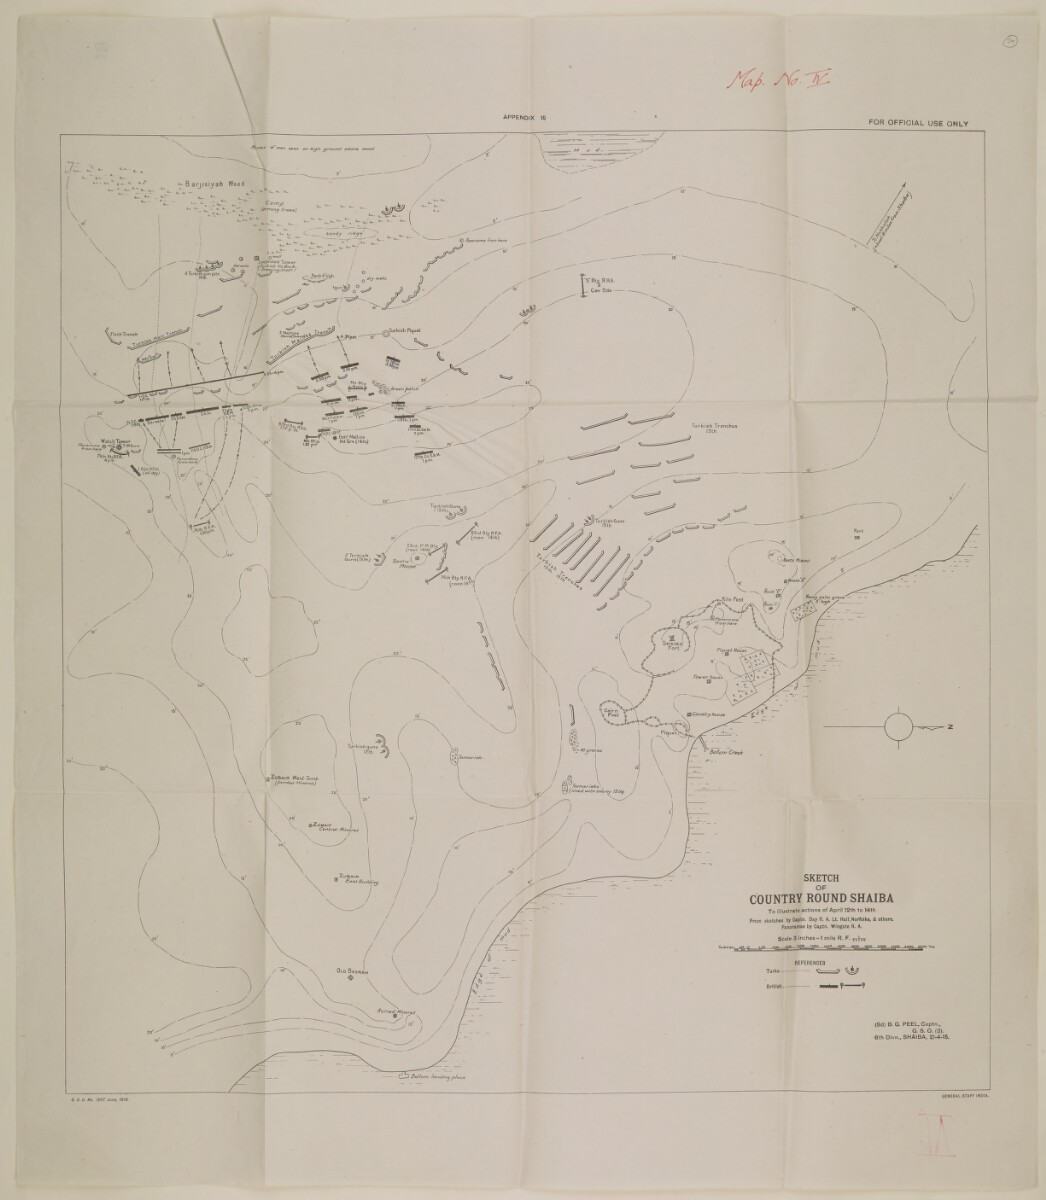 'Sketch of Country Round Shaiba To Illustrate Actions of April 12th to 14th From Sketches by Captain Day R.A. Lieutenants Hall, Norfolks, & others. Panoramas by Captain Wingate R.A.' [48] (1/1)